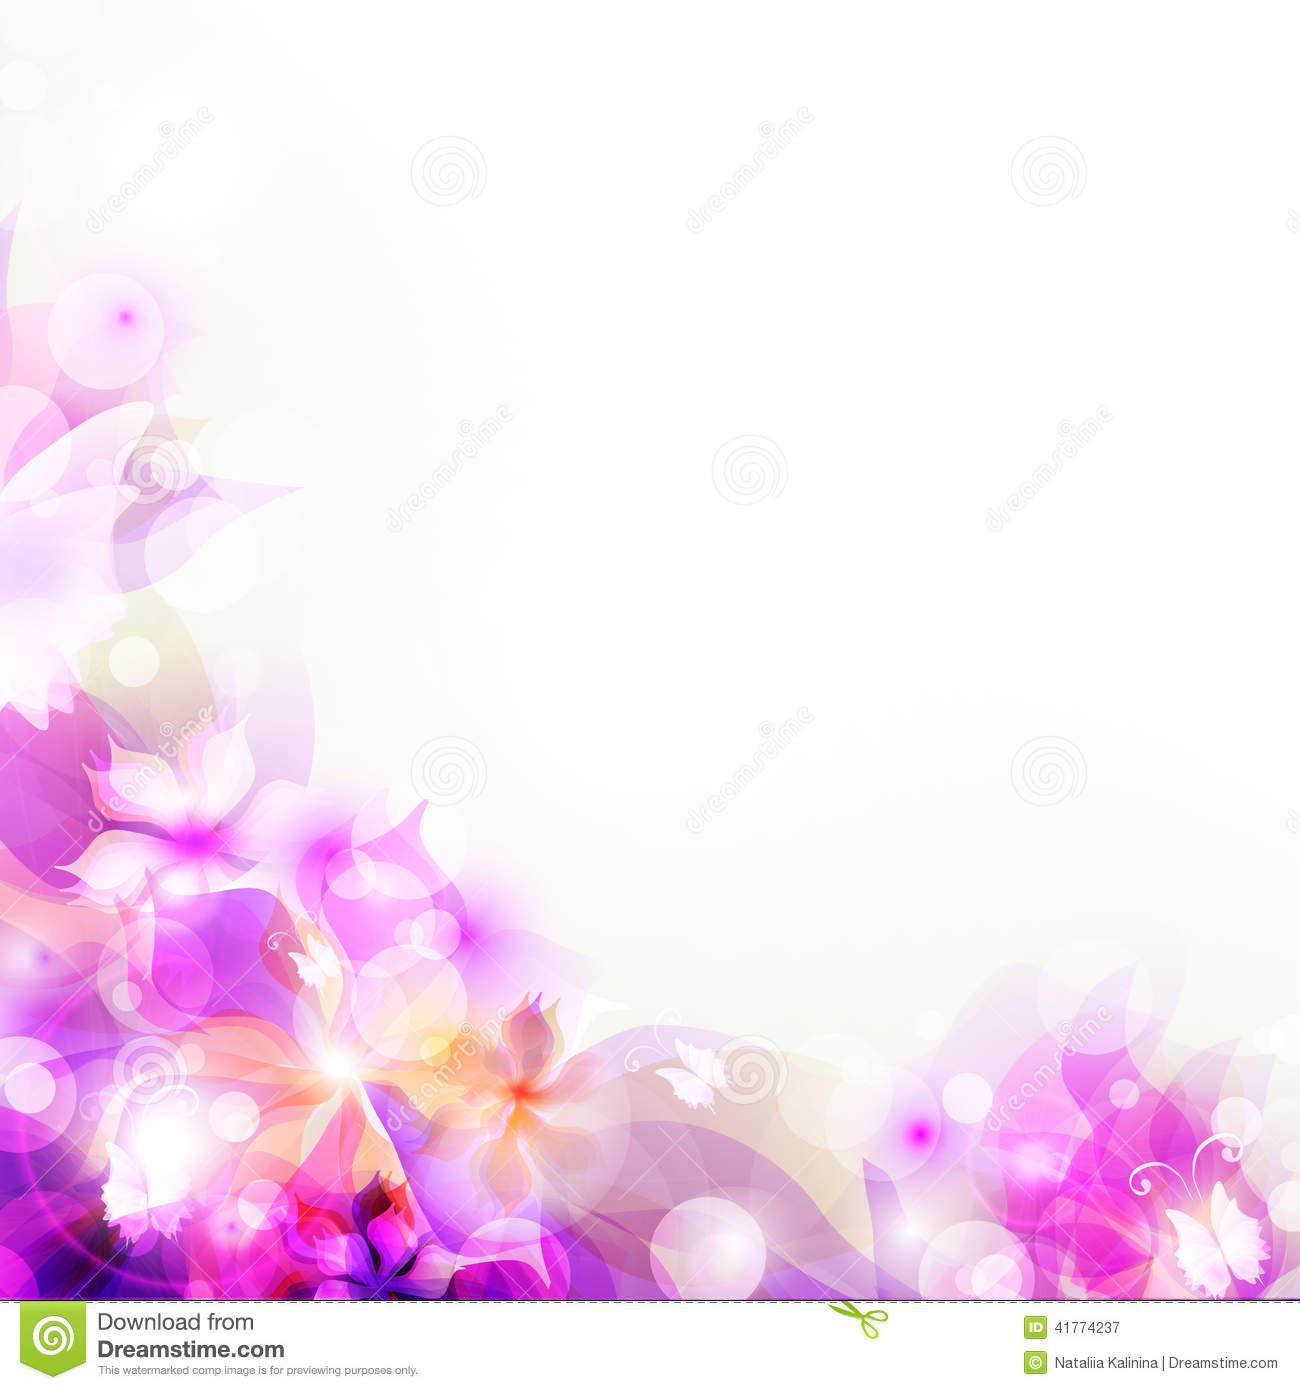 Abstract Flower Background With Decoration Elements For: Abstract Artistic Background With Purple Floral Stock